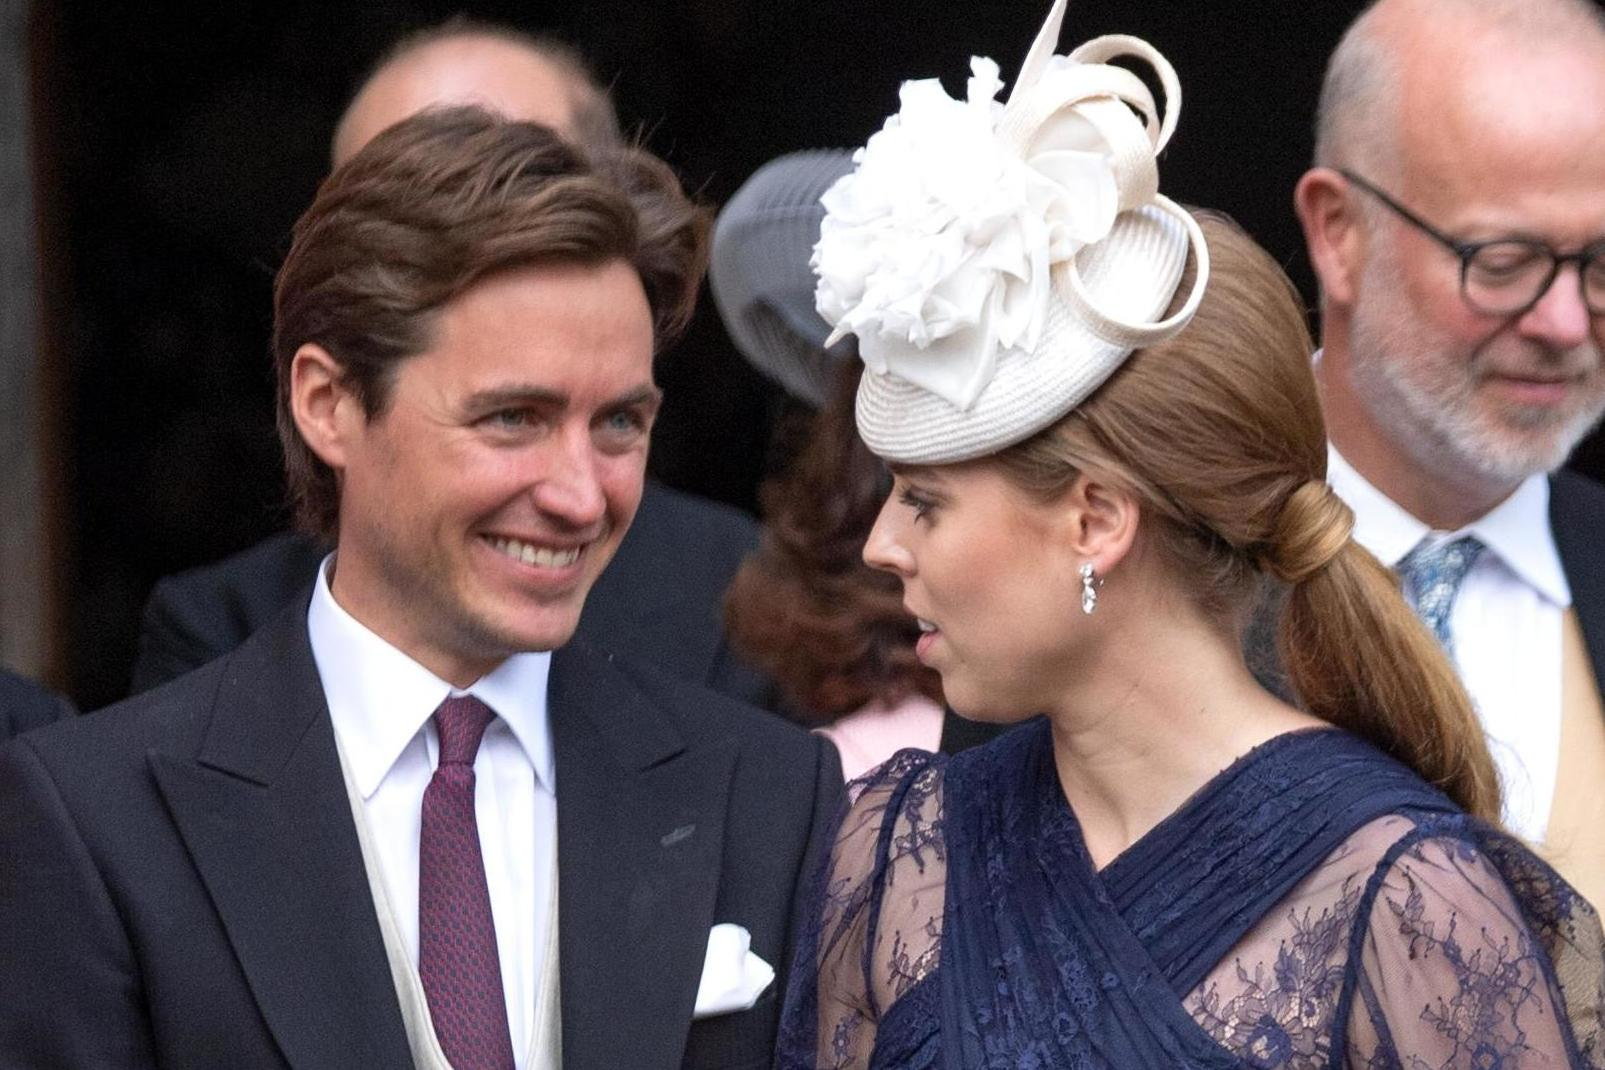 UK's Princess Beatrice engaged to real estate entrepreneur Edoardo Mapelli Mozzi jpg